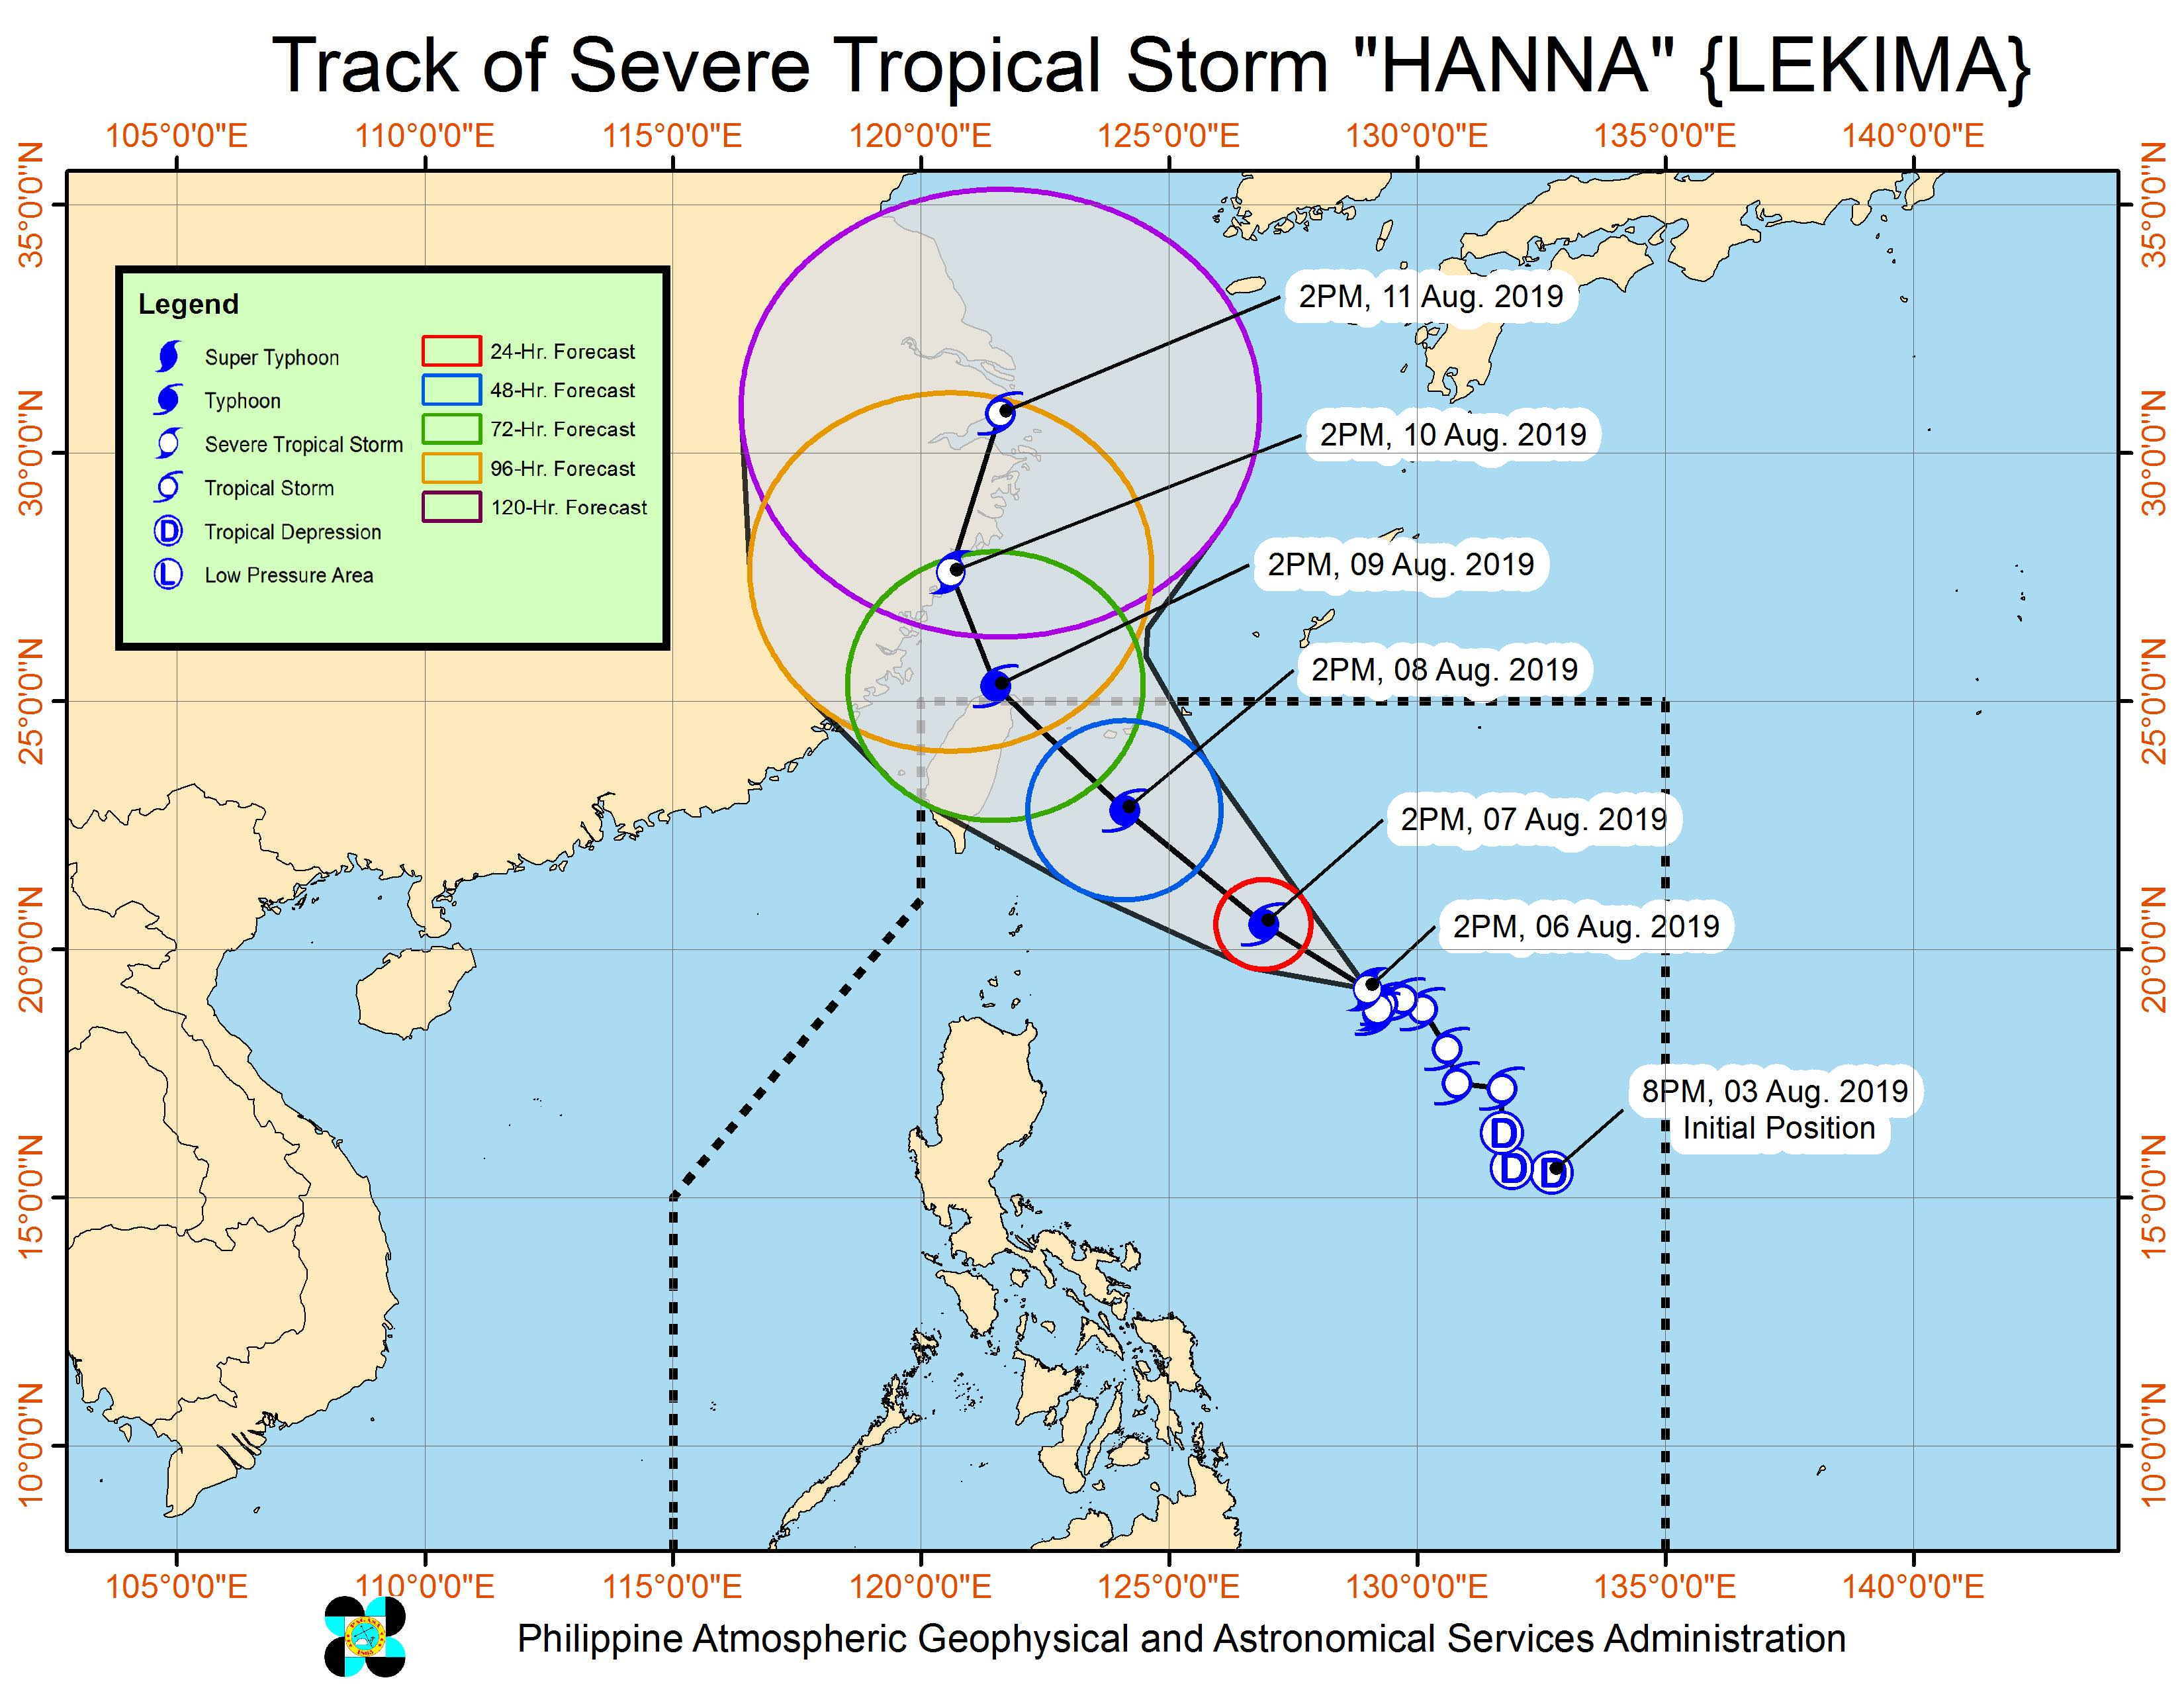 Forecast track of Severe Tropical Storm Hanna (Lekima) as of August 6, 2019, 5 pm. Image from PAGASA